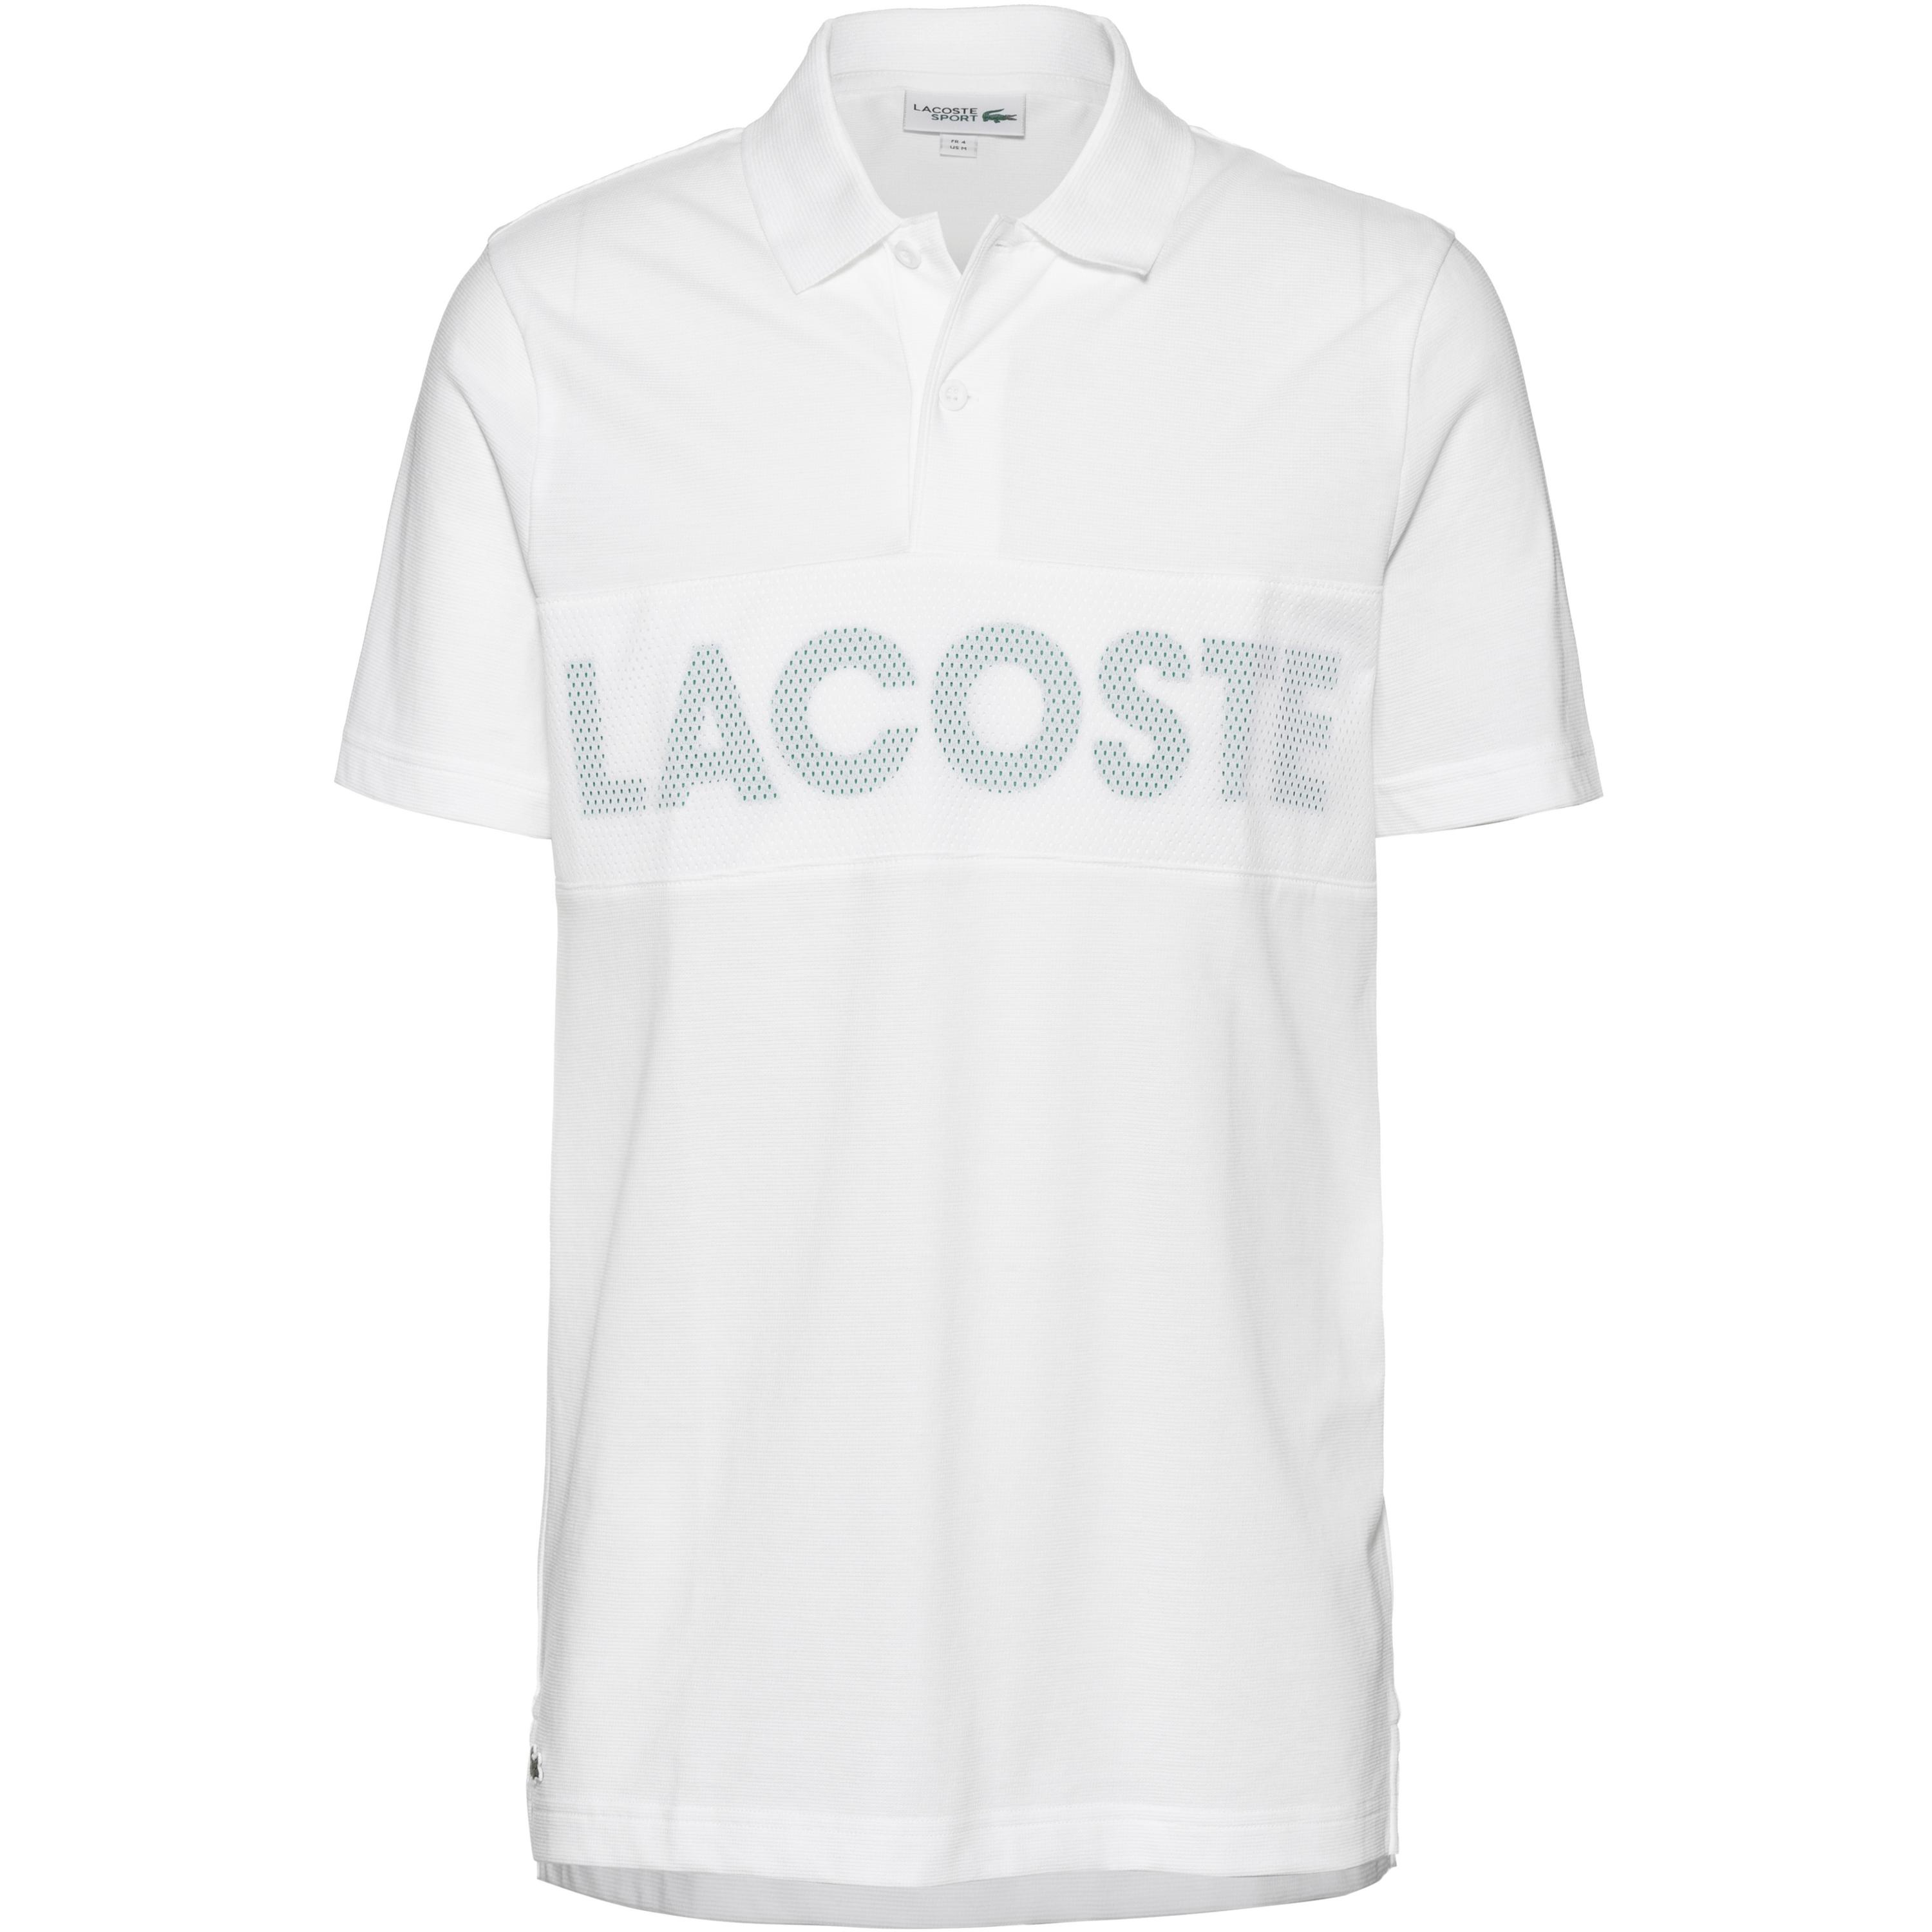 sports shoes 6f033 4728f AboutYou | Herren Lacoste Poloshirt | 03570670000237 ...